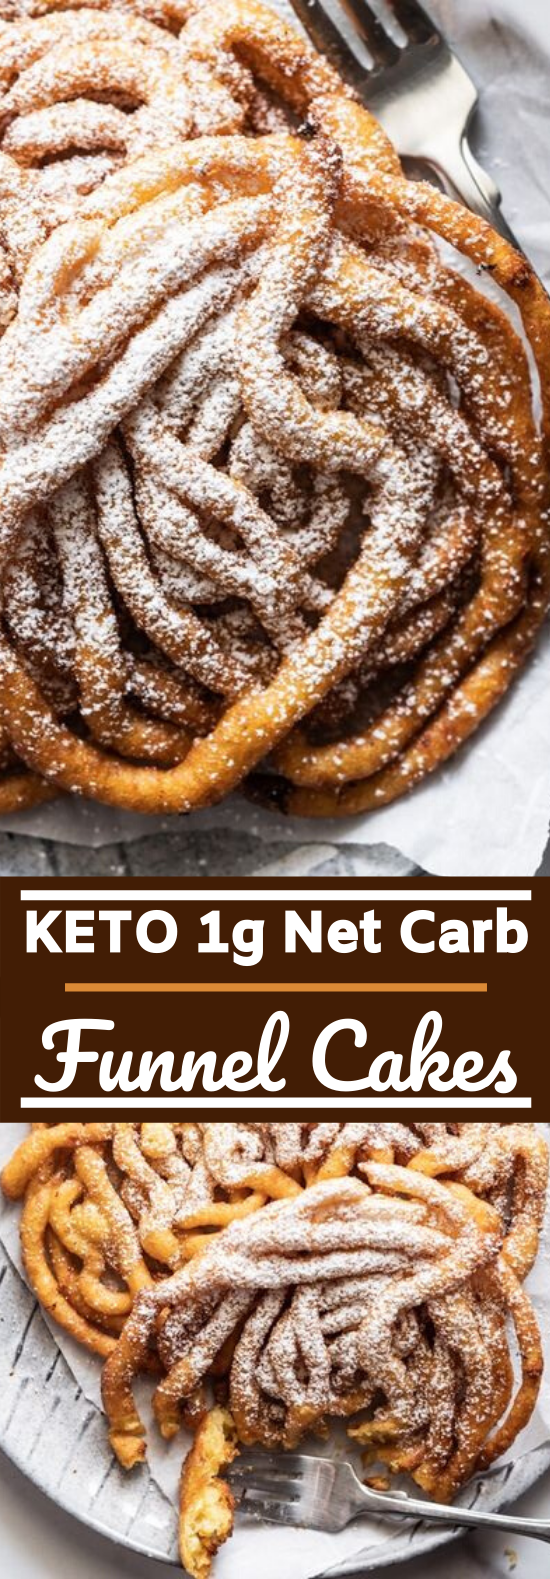 Homemade Keto Funnel Cakes #keto #recipe #lowcarb #desserts #diet